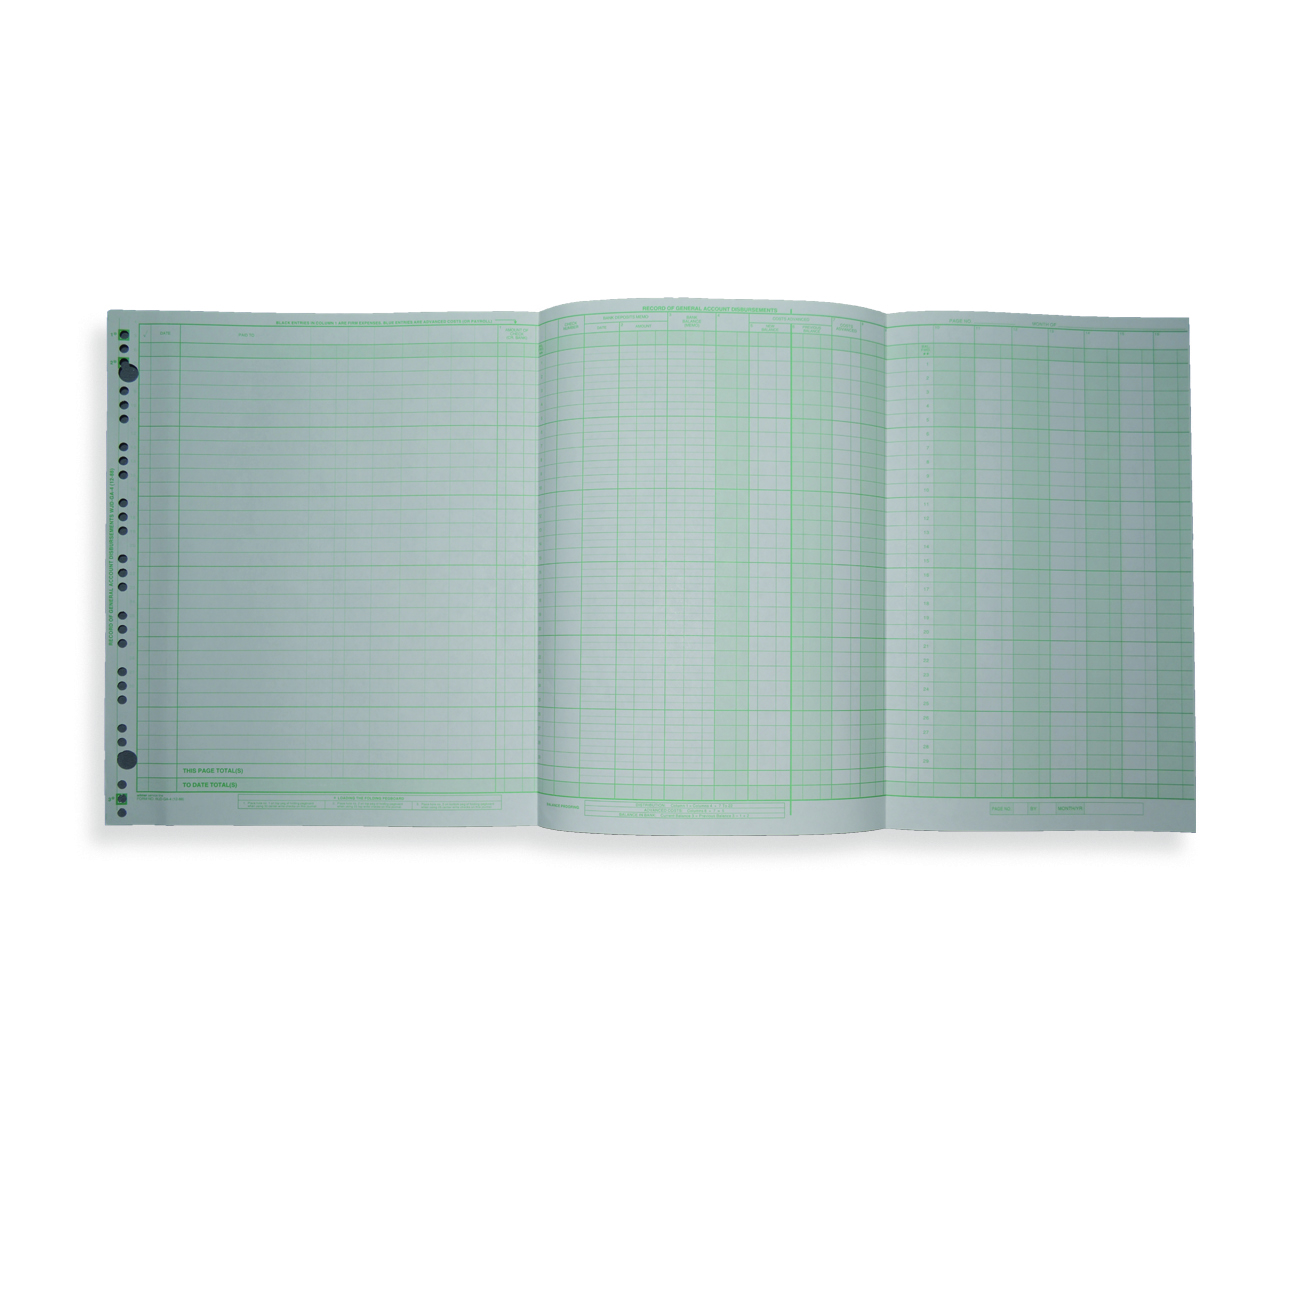 "General Account Disbursement Journal 11"" x 23 5/8"" General Account Disbursement Journal"